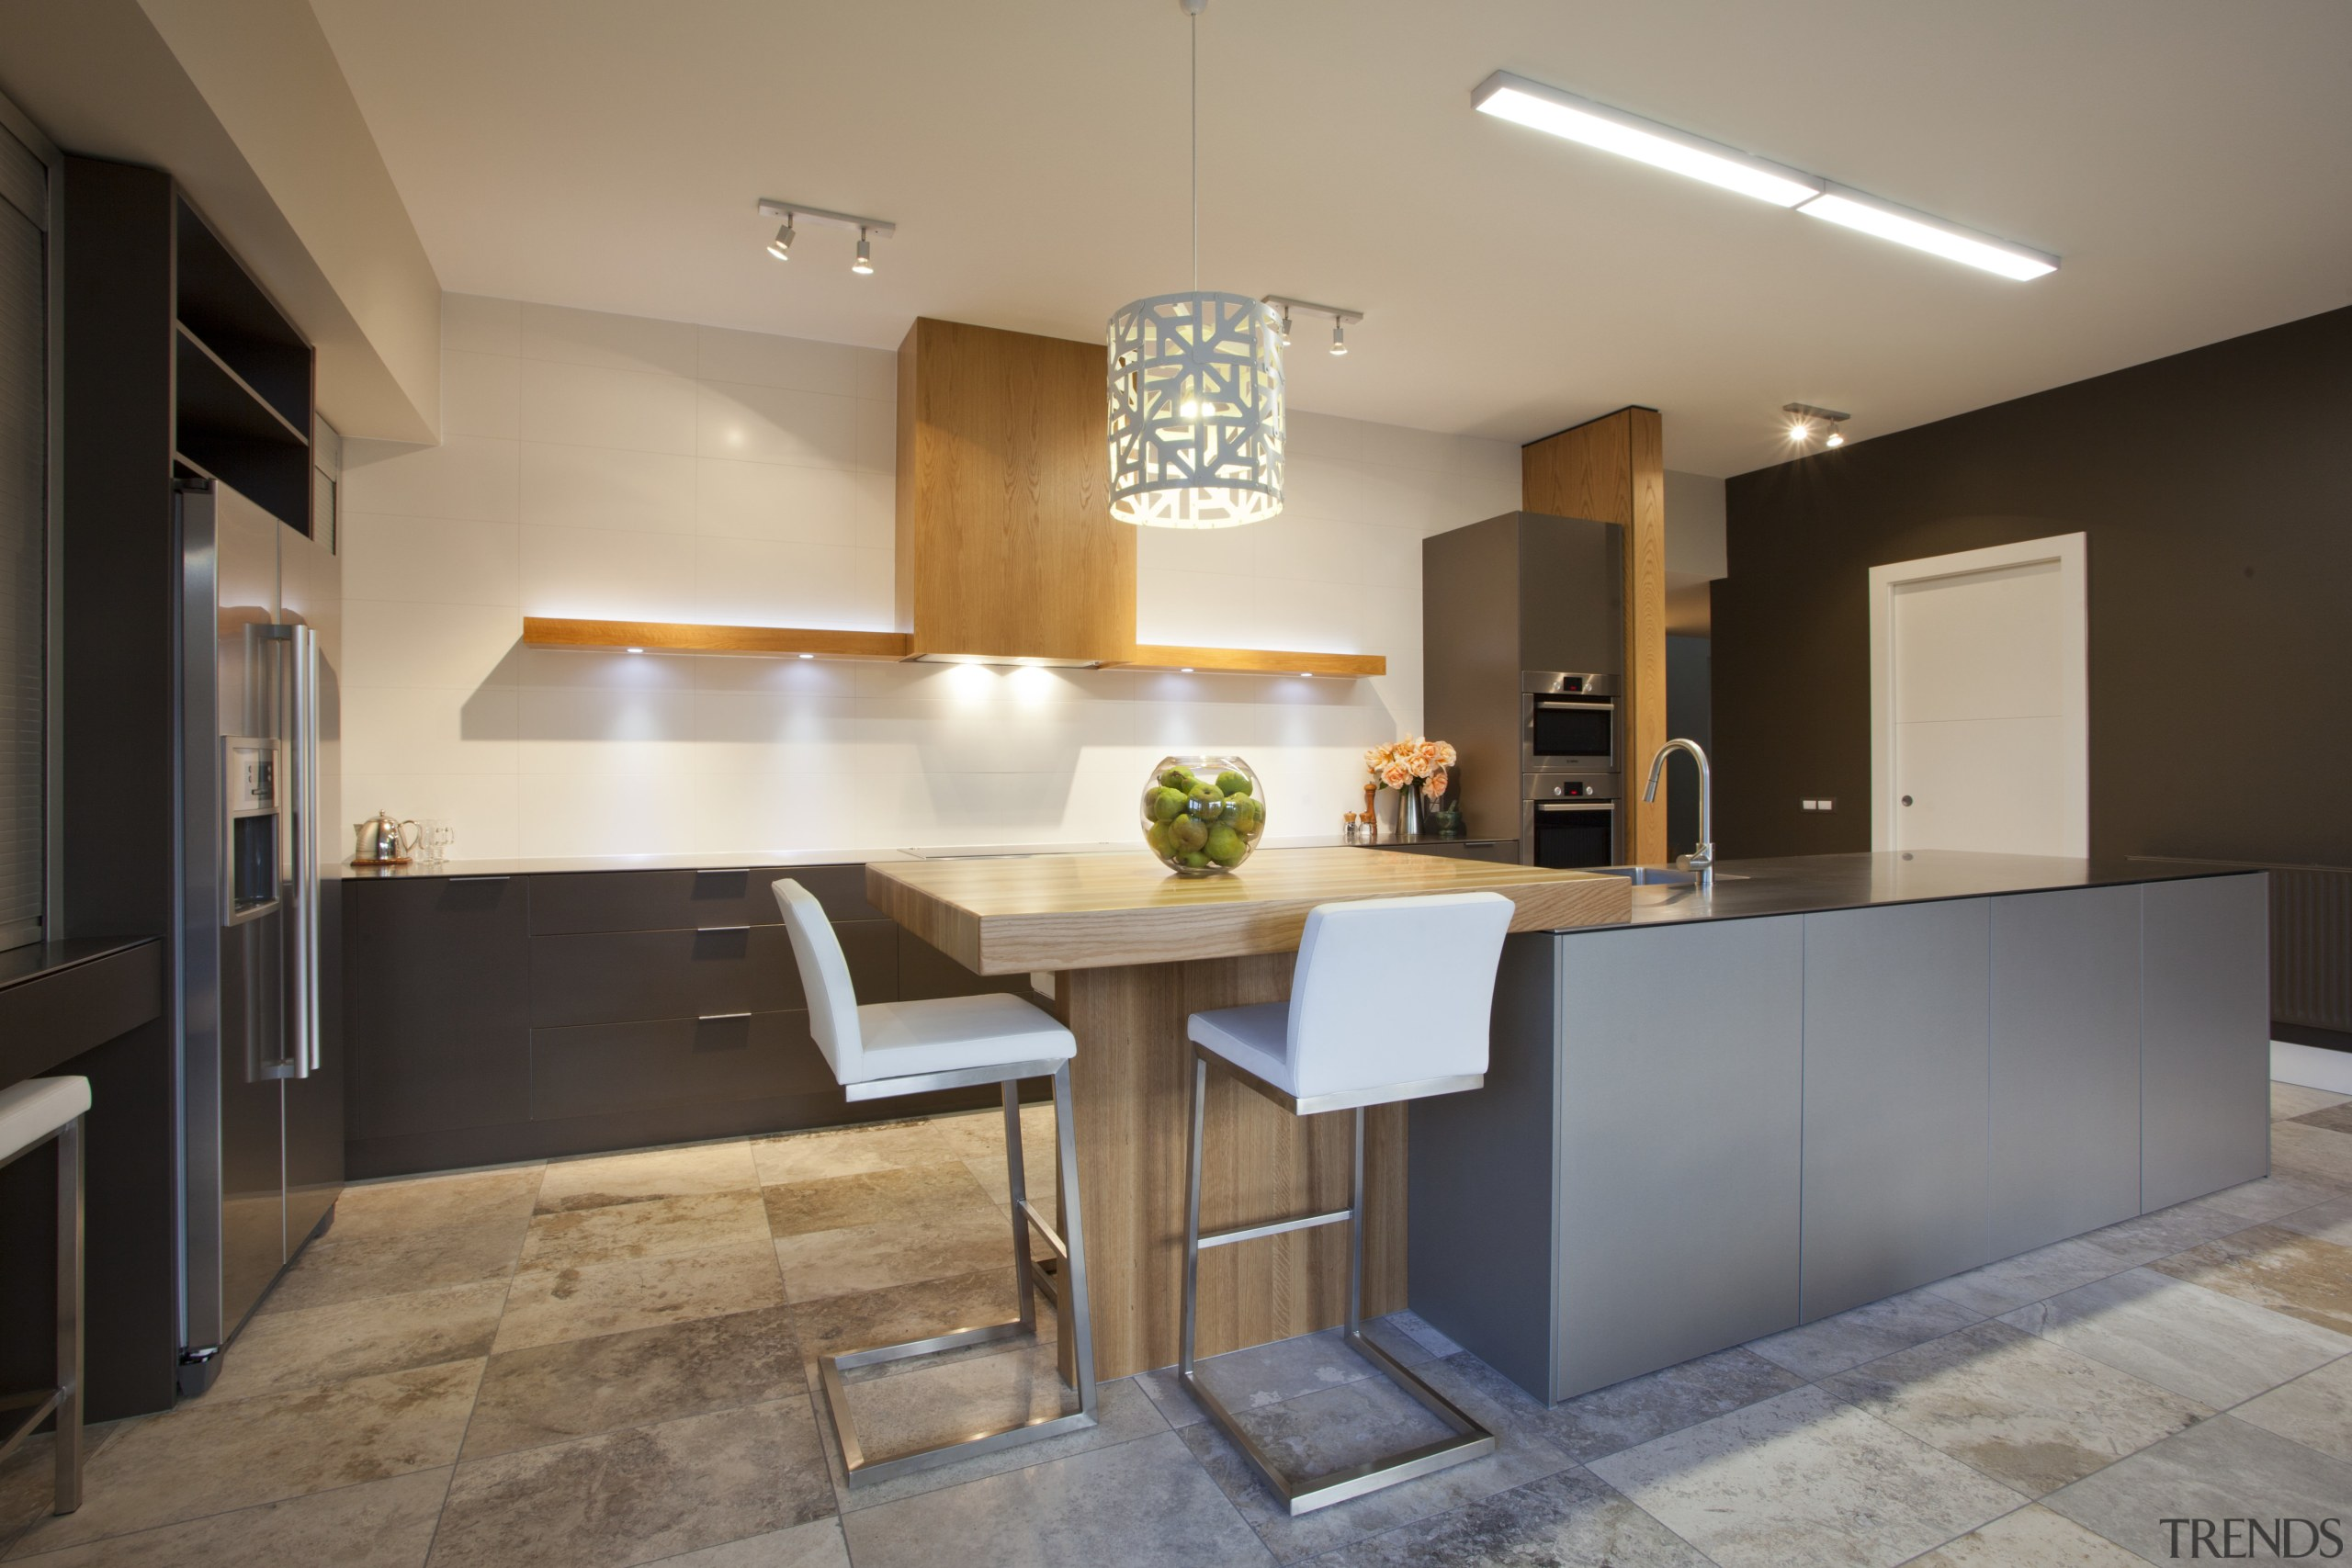 stainless steel appliances and benchtops. Wooden bar top architecture, cabinetry, countertop, cuisine classique, interior design, kitchen, real estate, room, table, gray